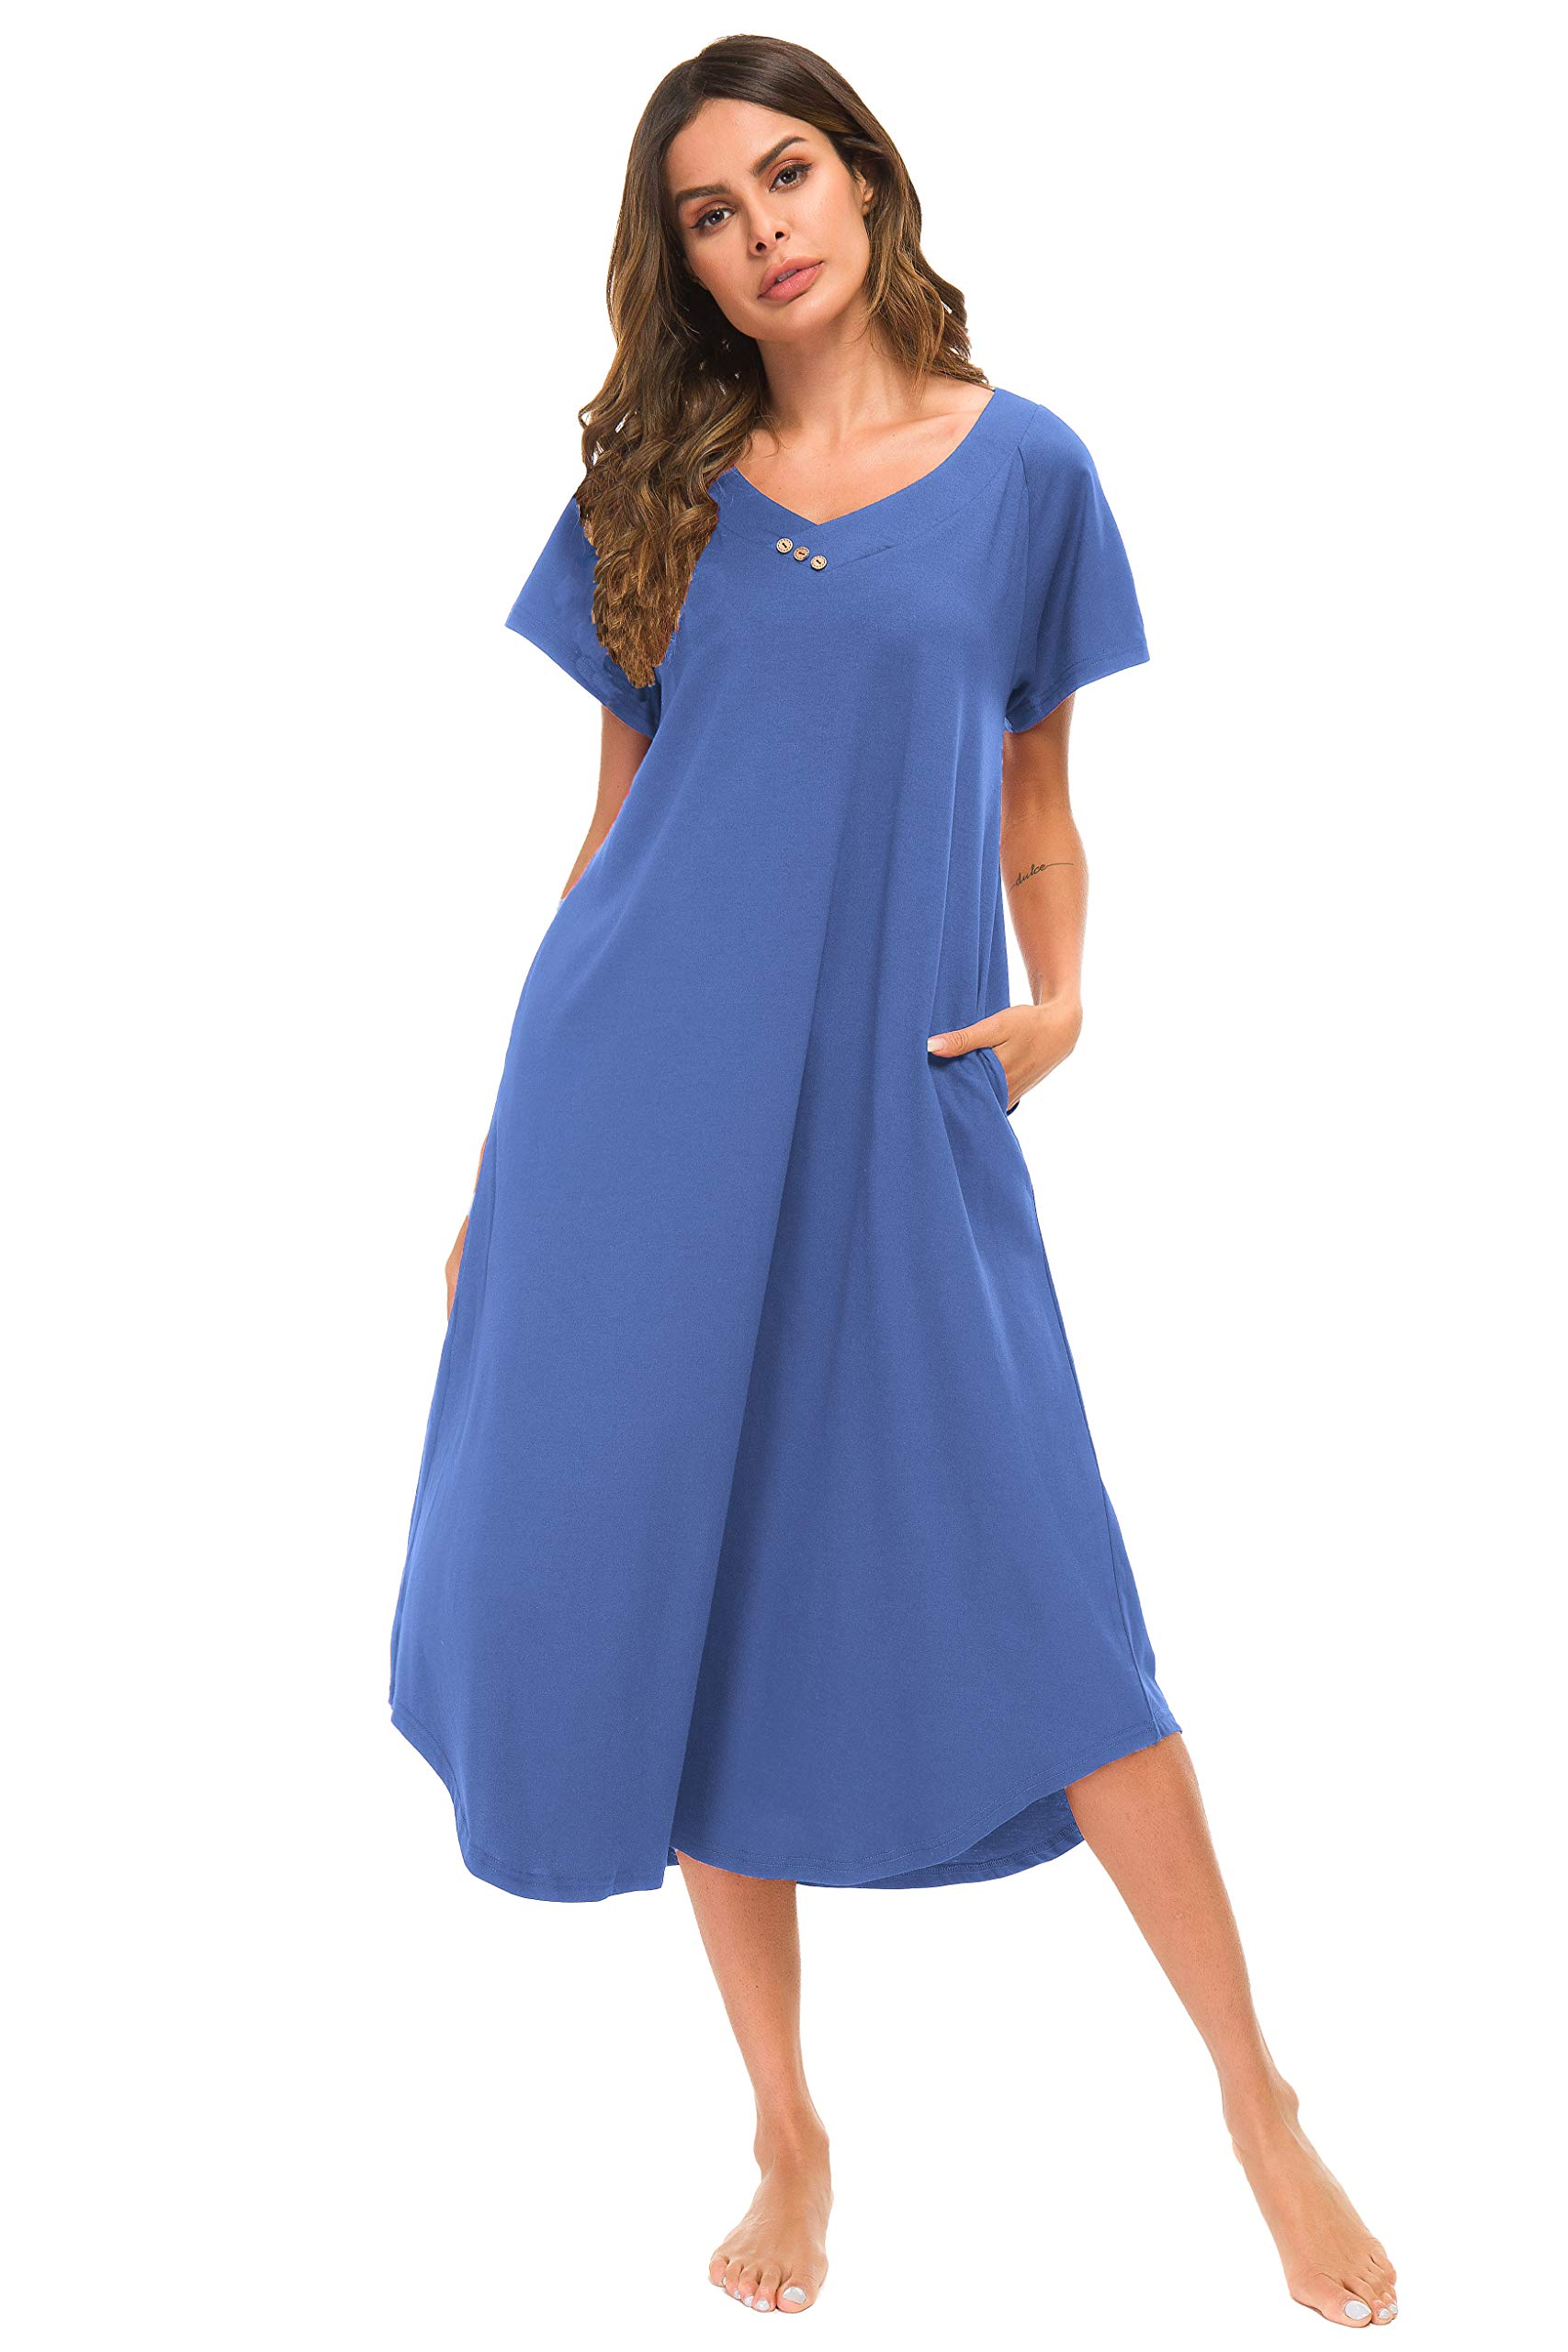 YOZLY Nightshirt Women Soft Caftan Loungewear Cotton Lounge House Dress Long Nightgown